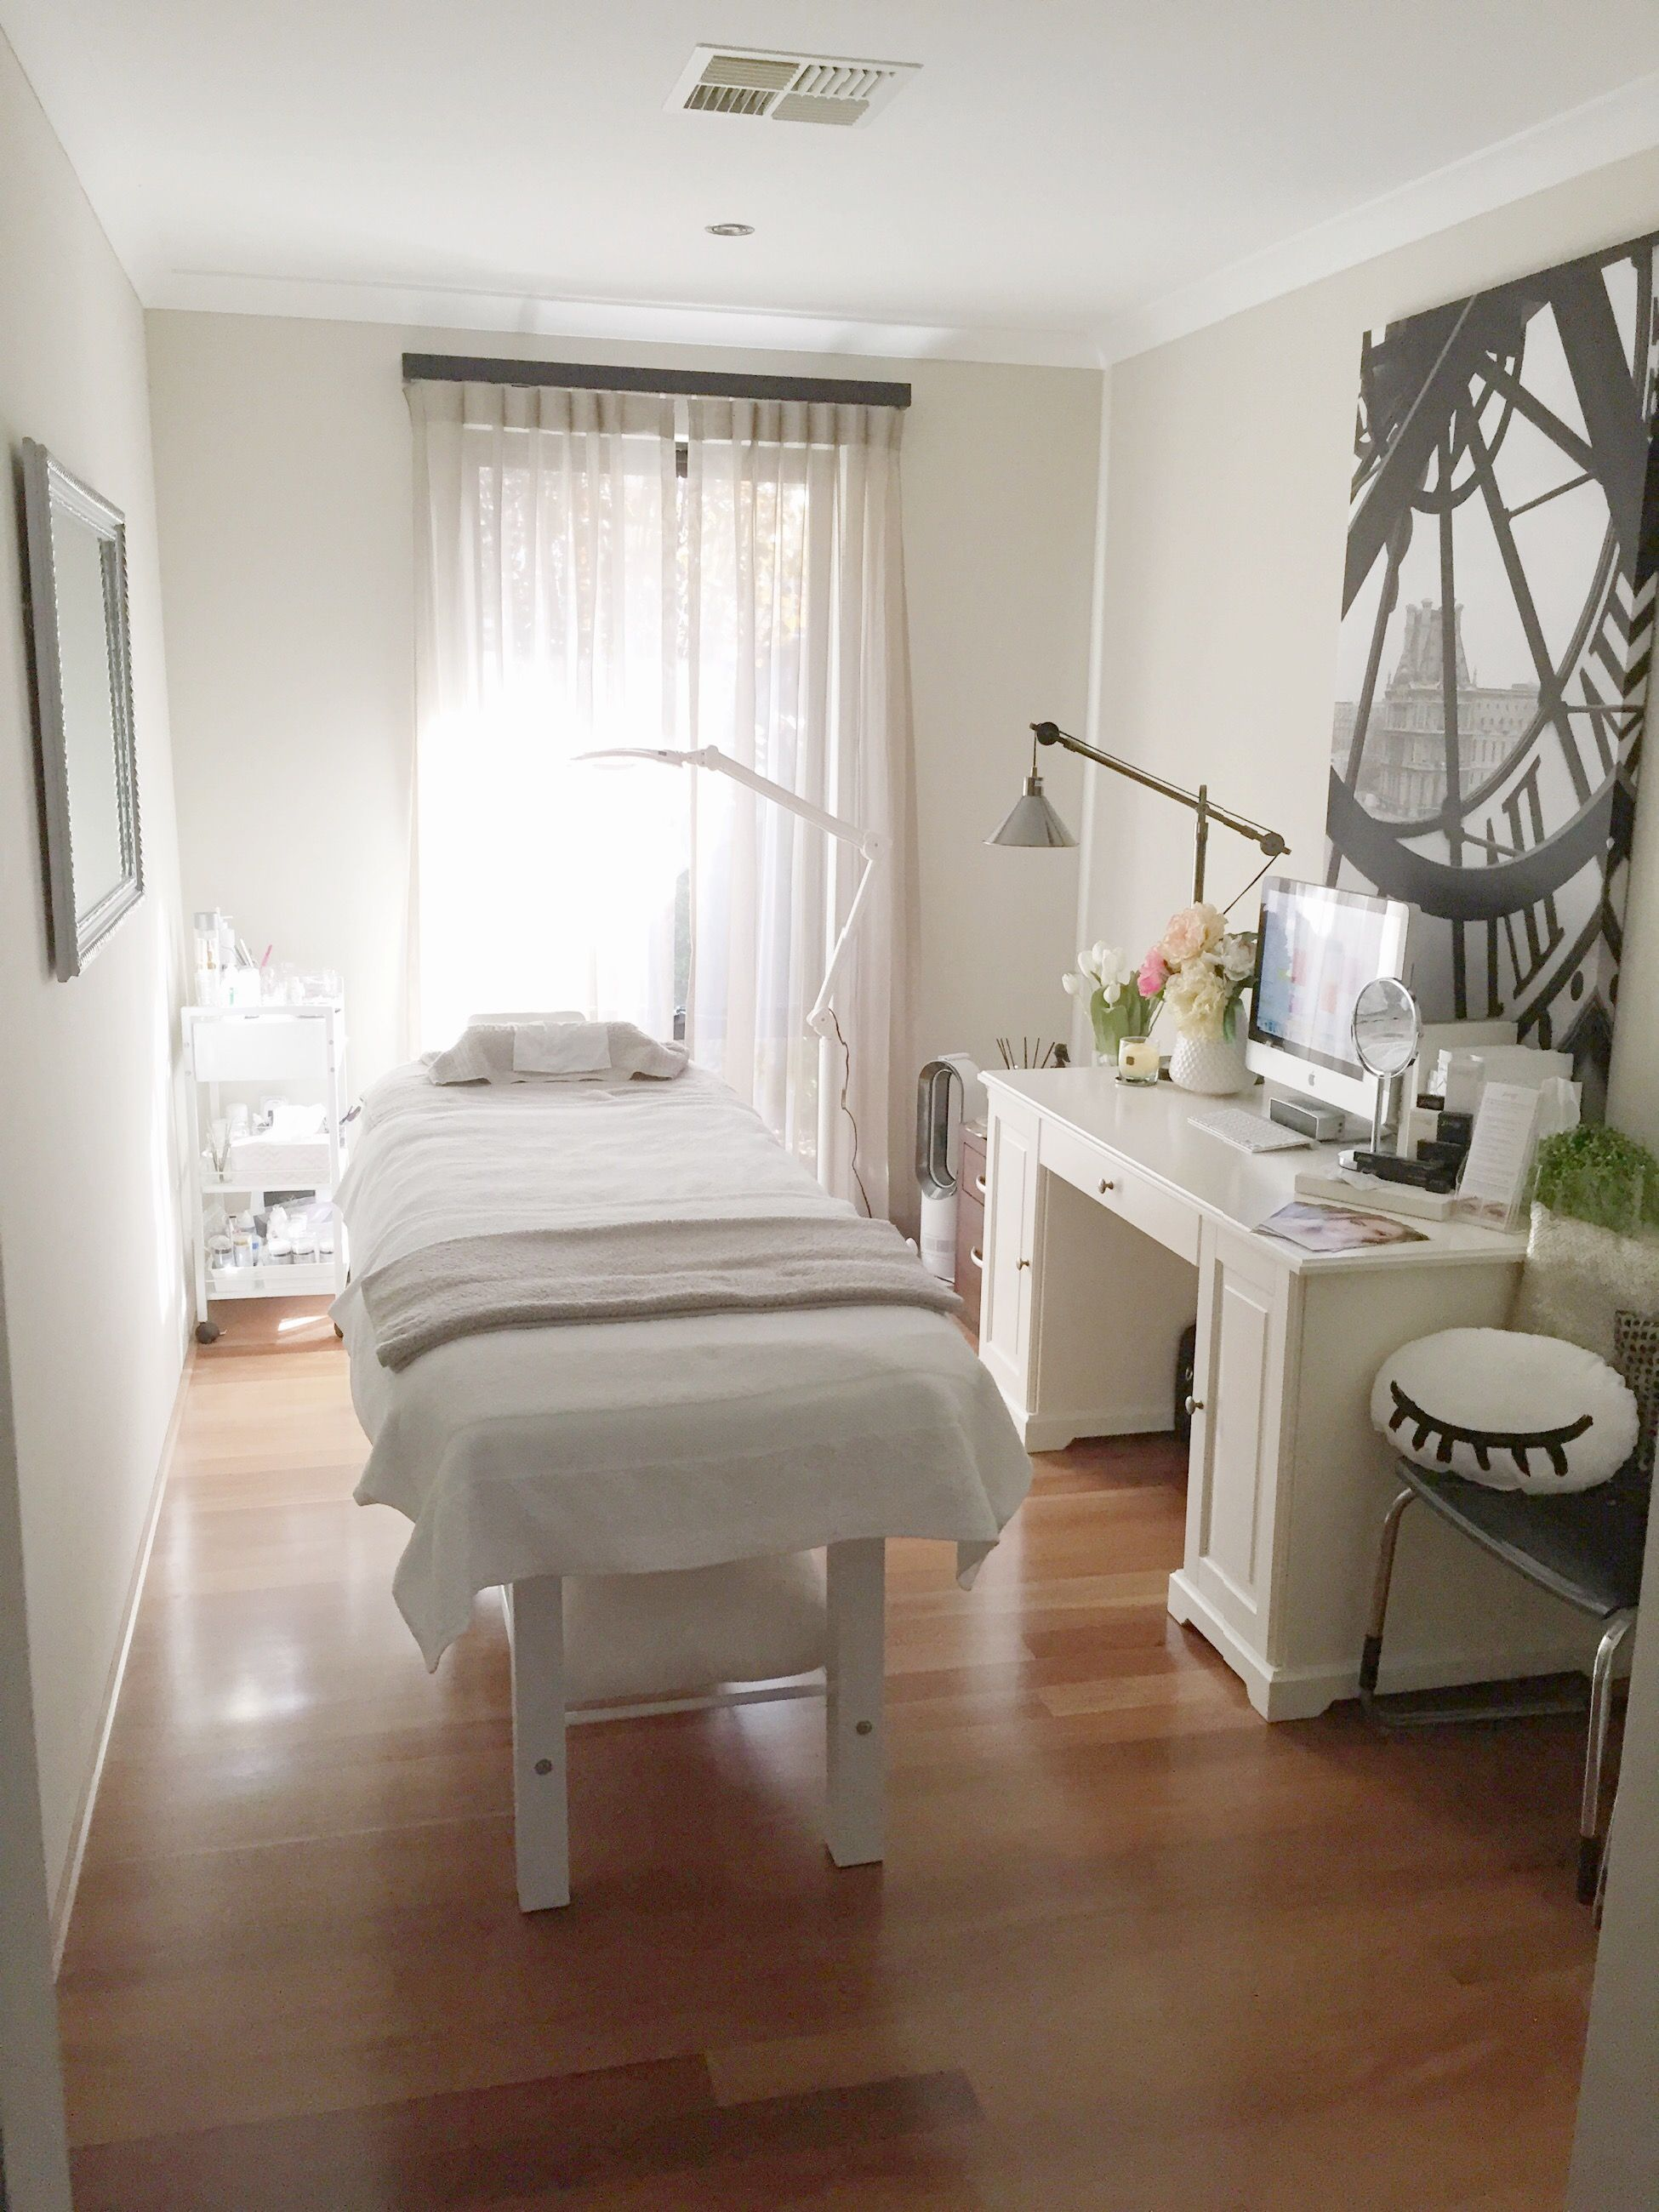 Lash salon decor treatment rooms pinteres for How to make a beauty salon at home